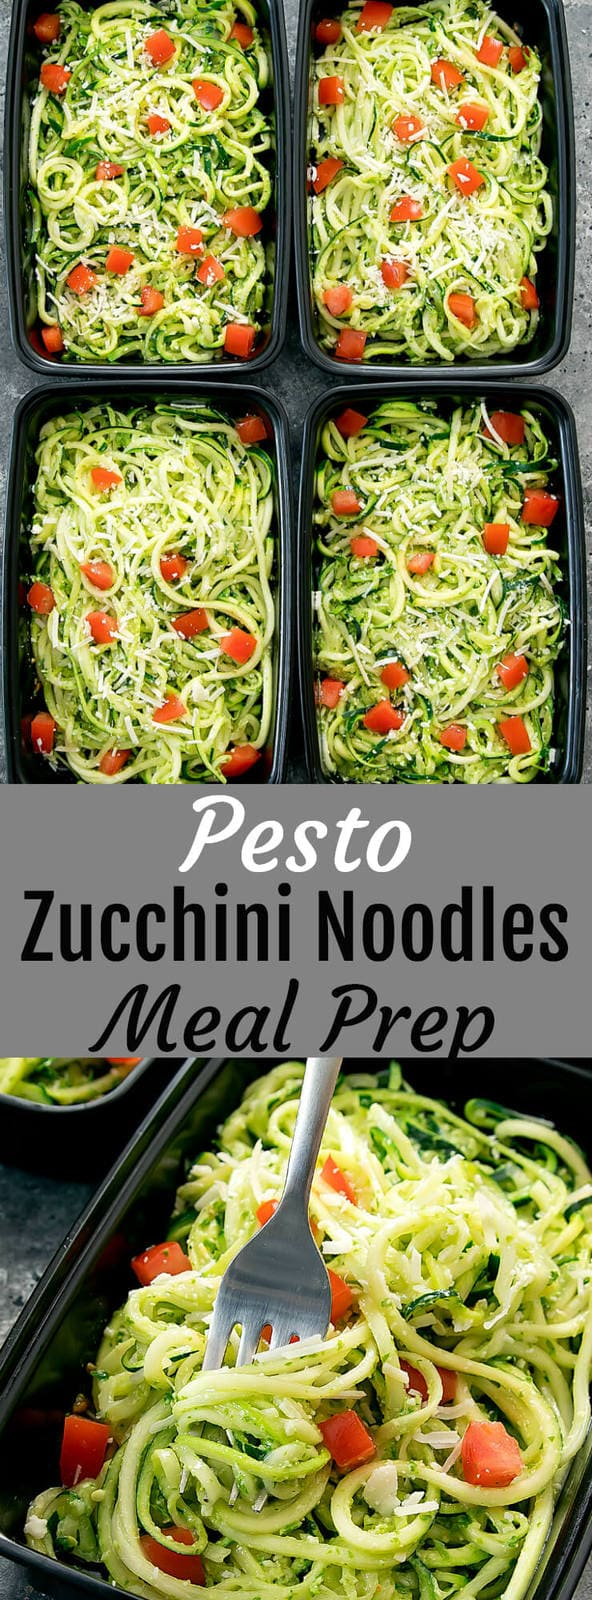 Pesto Zucchini Noodles Meal Prep. An easy and flavorful meal that can be made ahead of time for your weekly meal prep.